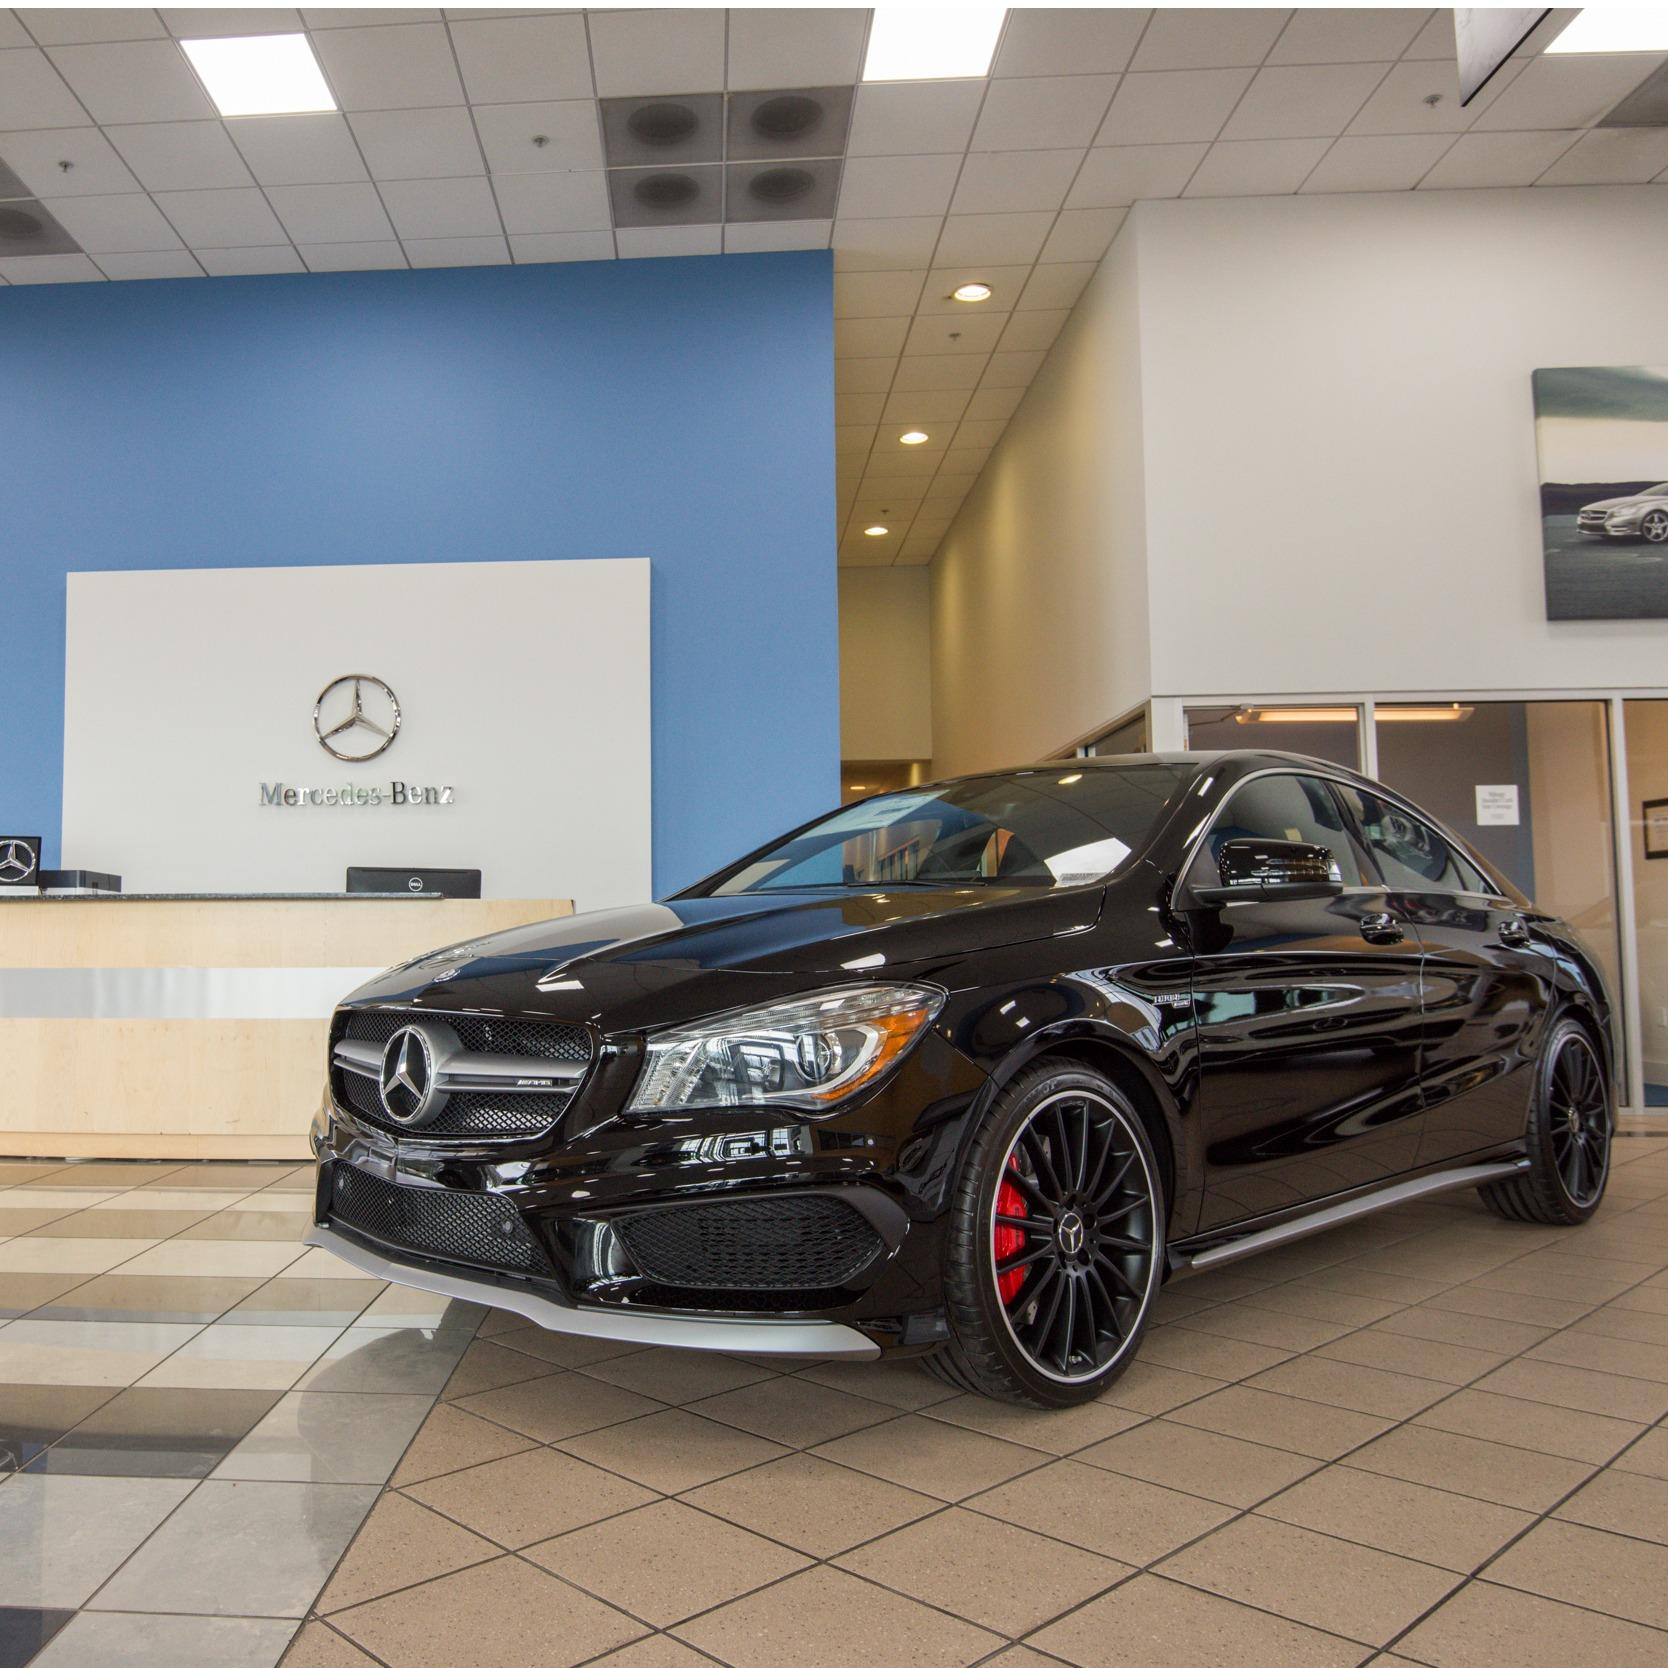 Mercedes benz of reno in reno nv auto dealers yellow for Mercedes benz of henderson nv